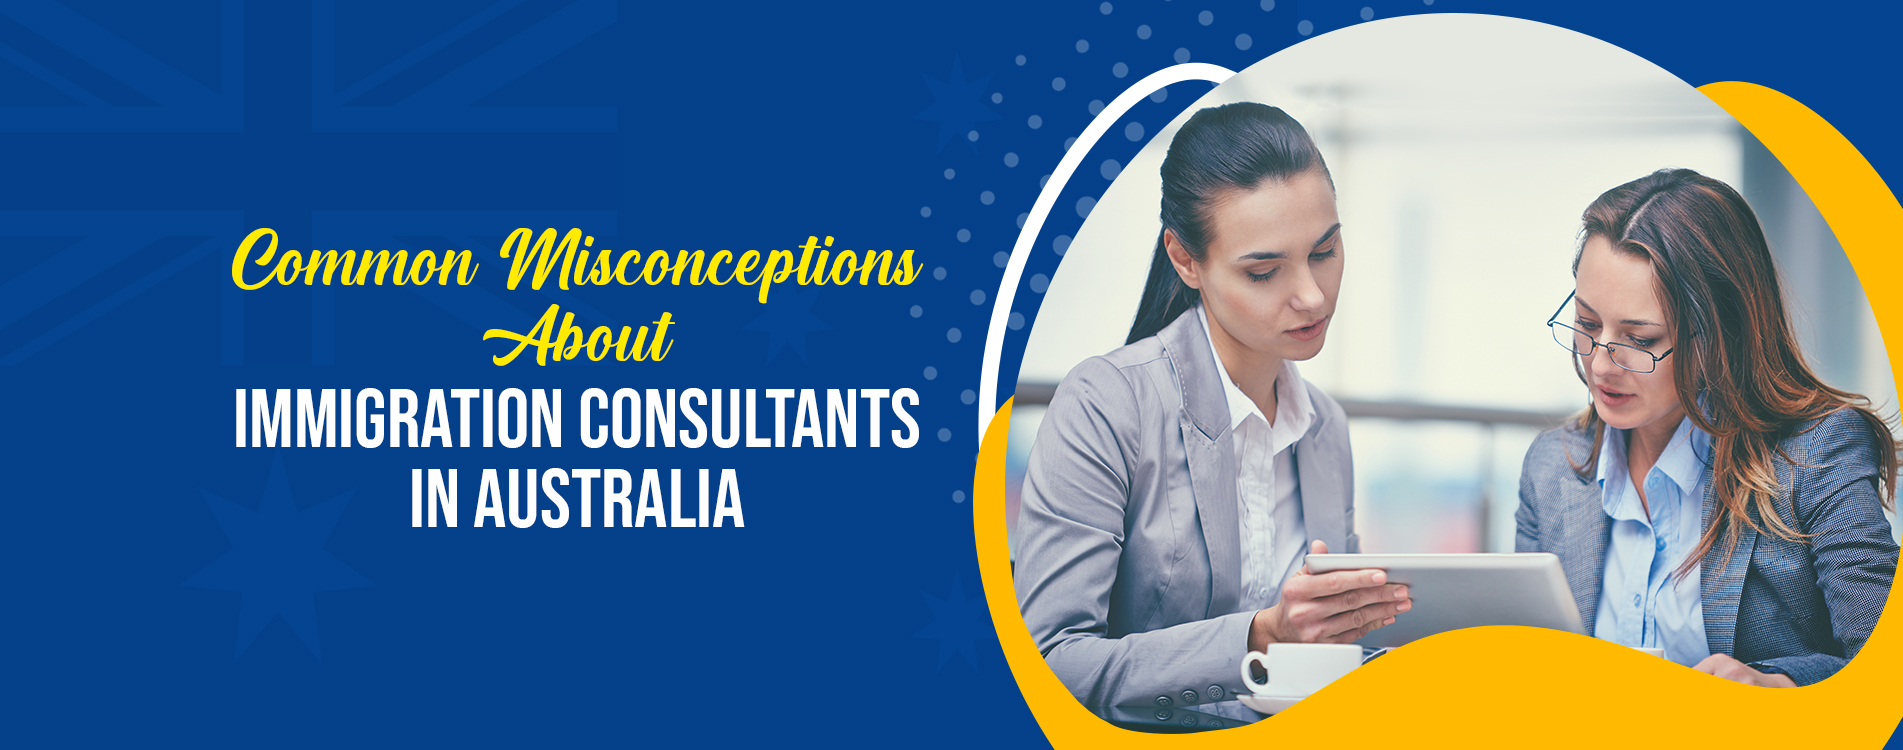 Common Misconceptions About Immigration Consultants in Australia